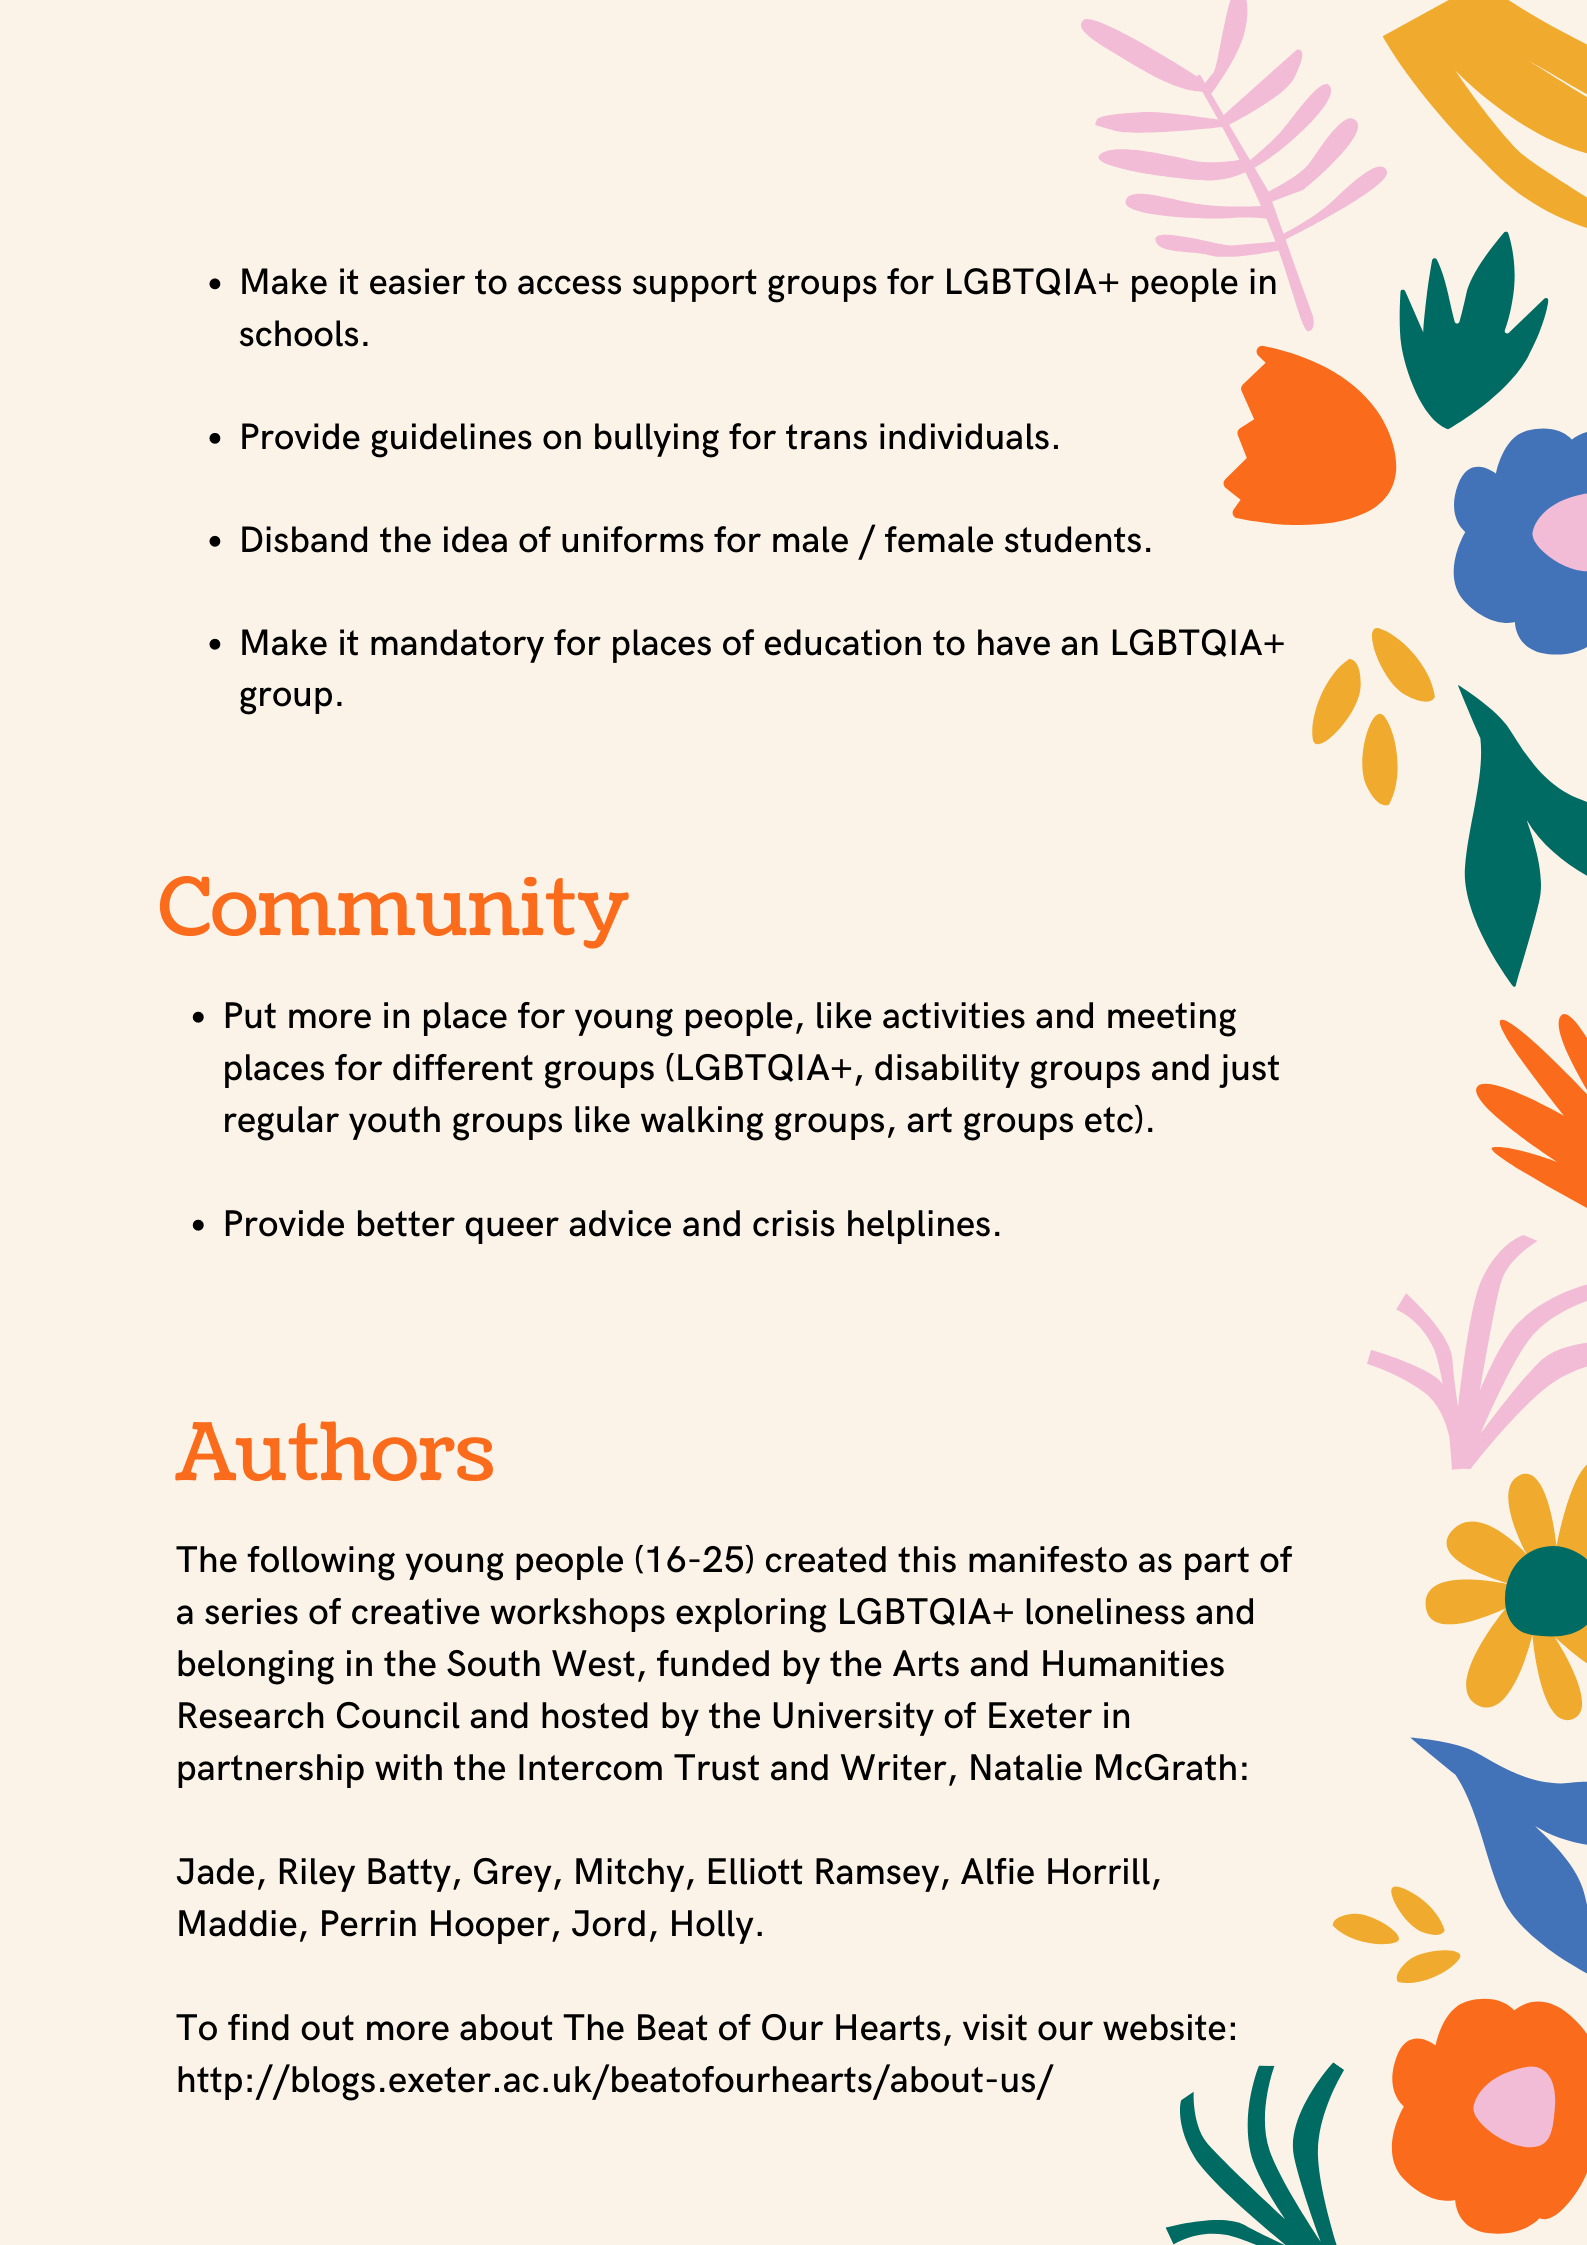 Picture of the manifesto, with a peach background and block colour flowers down the left-hand side. The Beat of Our Hearts logo is in the top left-hand corner. The manifesto is in two pages. The second page continues education but also has a theme of community. Information about the authors of the manifesto is also on this page.